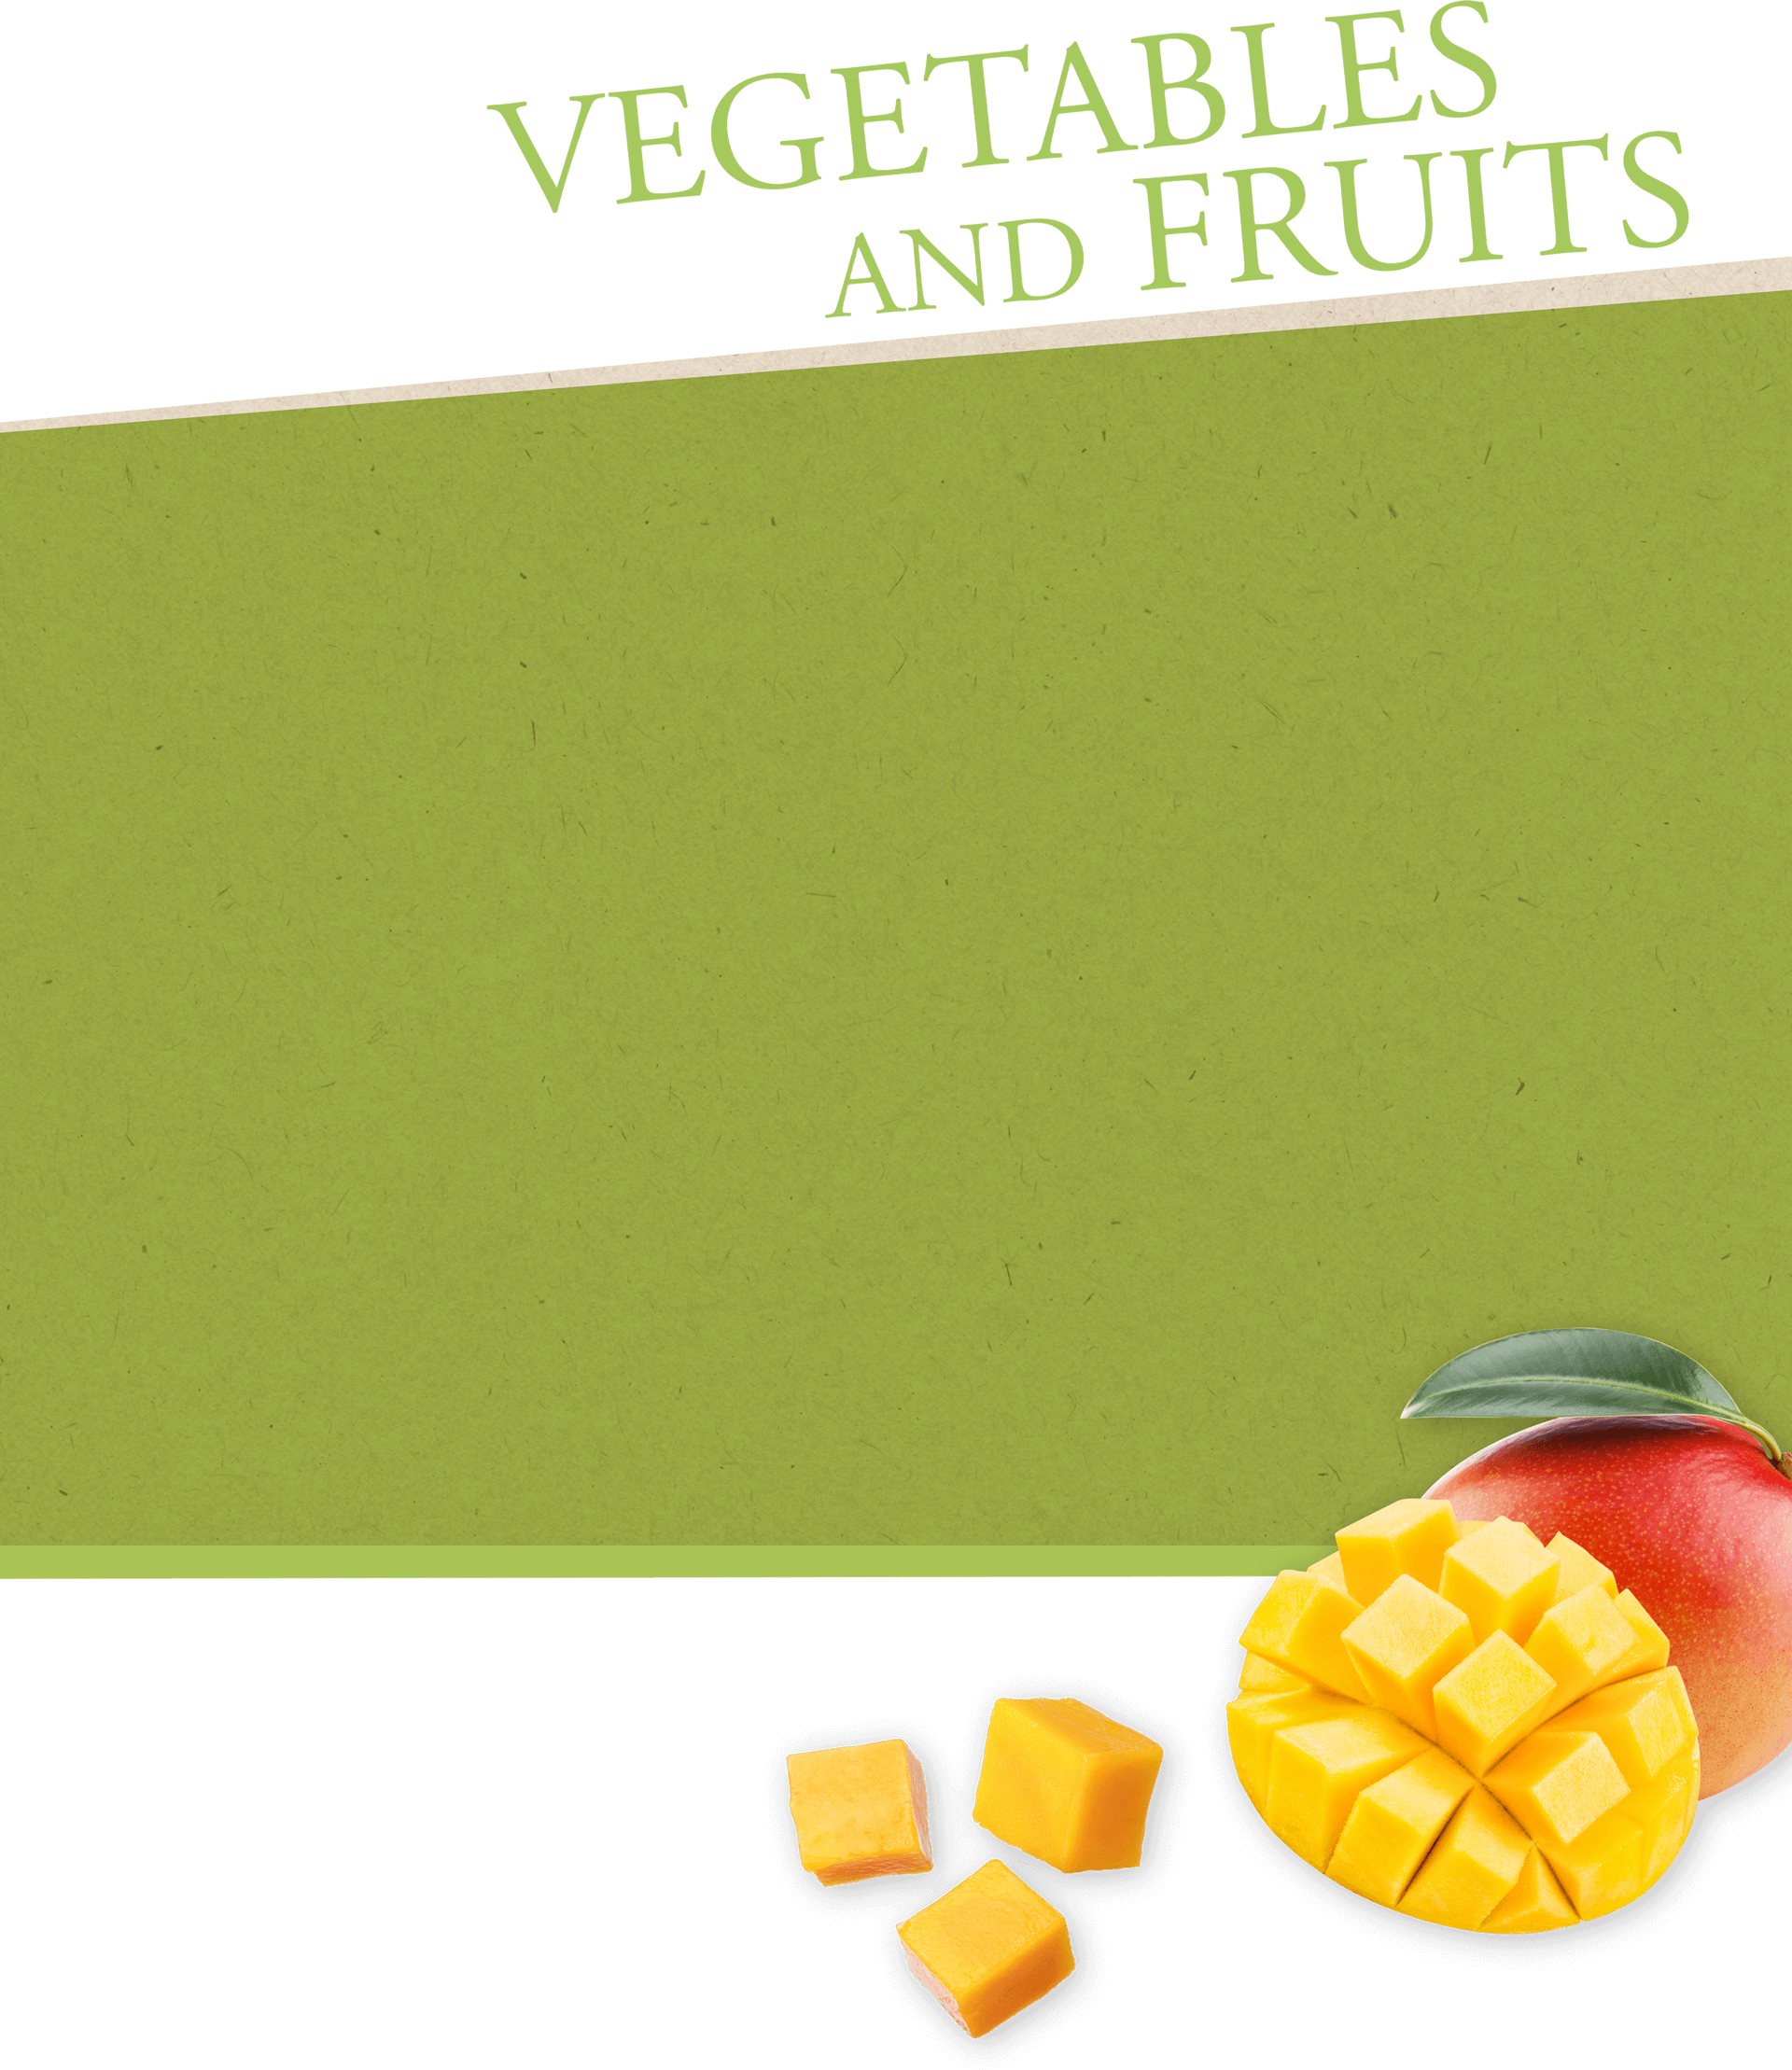 VAGETABLES AND FRUITS